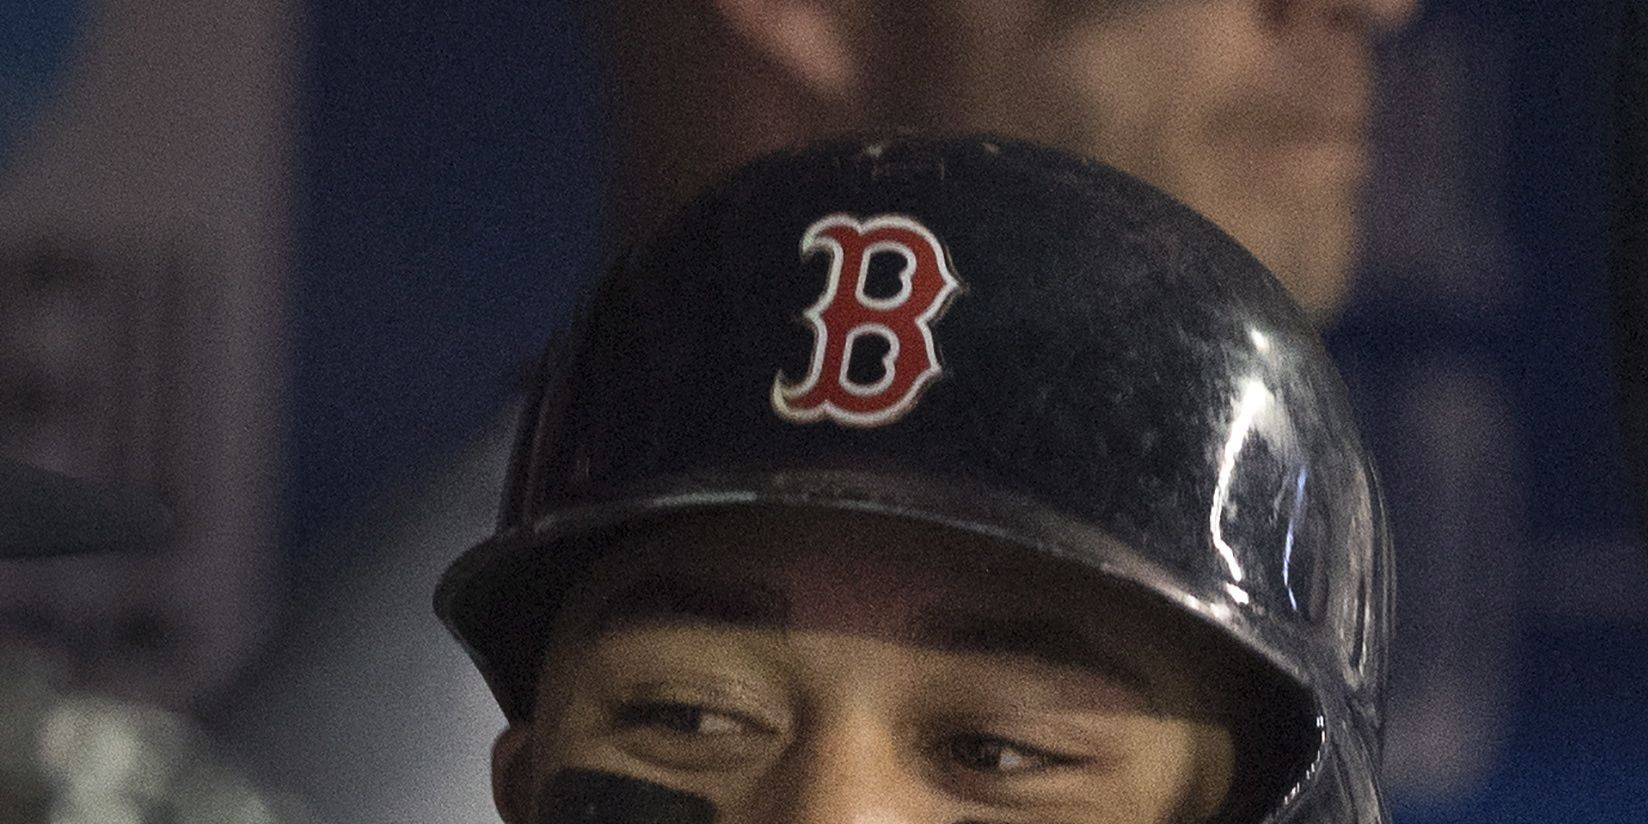 Free Taco Bell tacos for everyone after Mookie Betts steals a base seven pitches into World Series